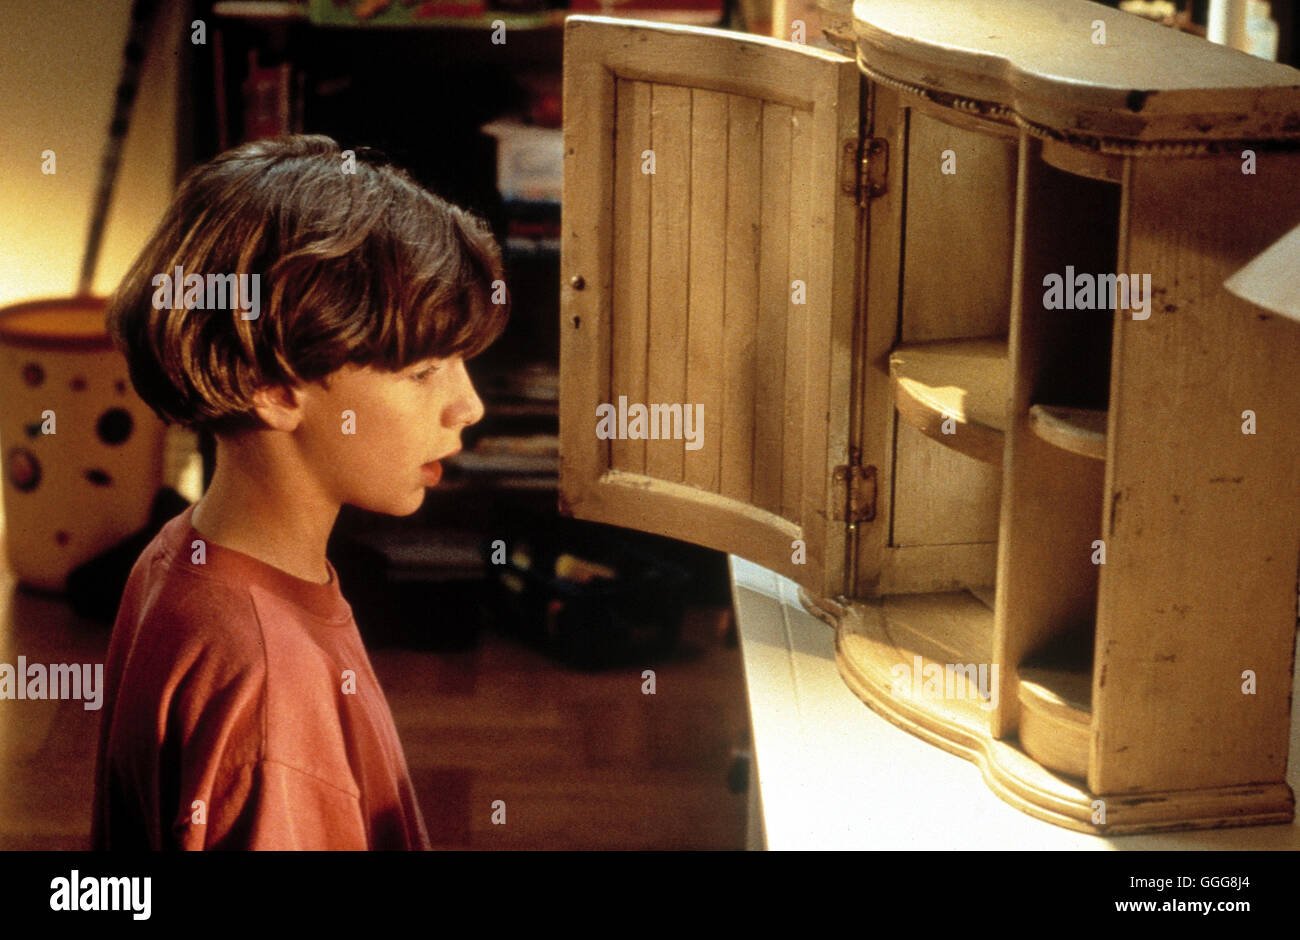 Indian In The Cupboard Stock Photos & Indian In The Cupboard Stock ...